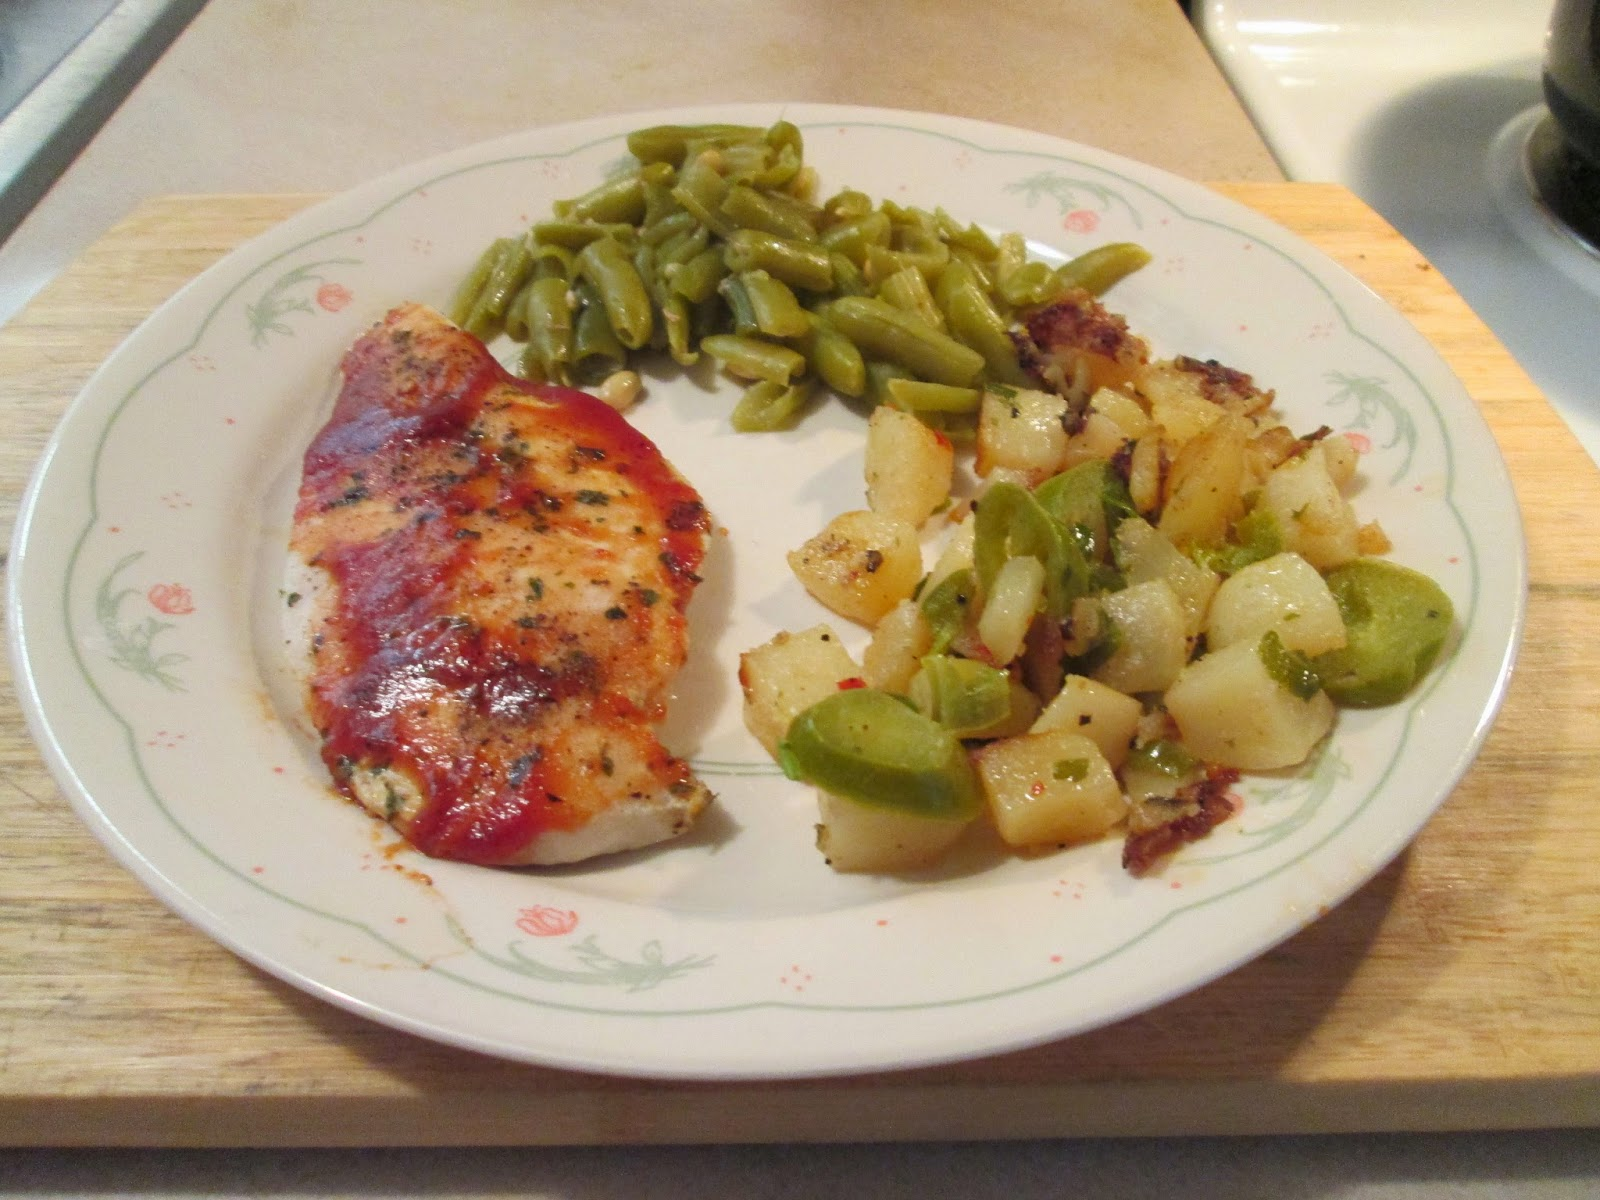 Roasted chicken breasts recipes - roasted chicken breasts recipe